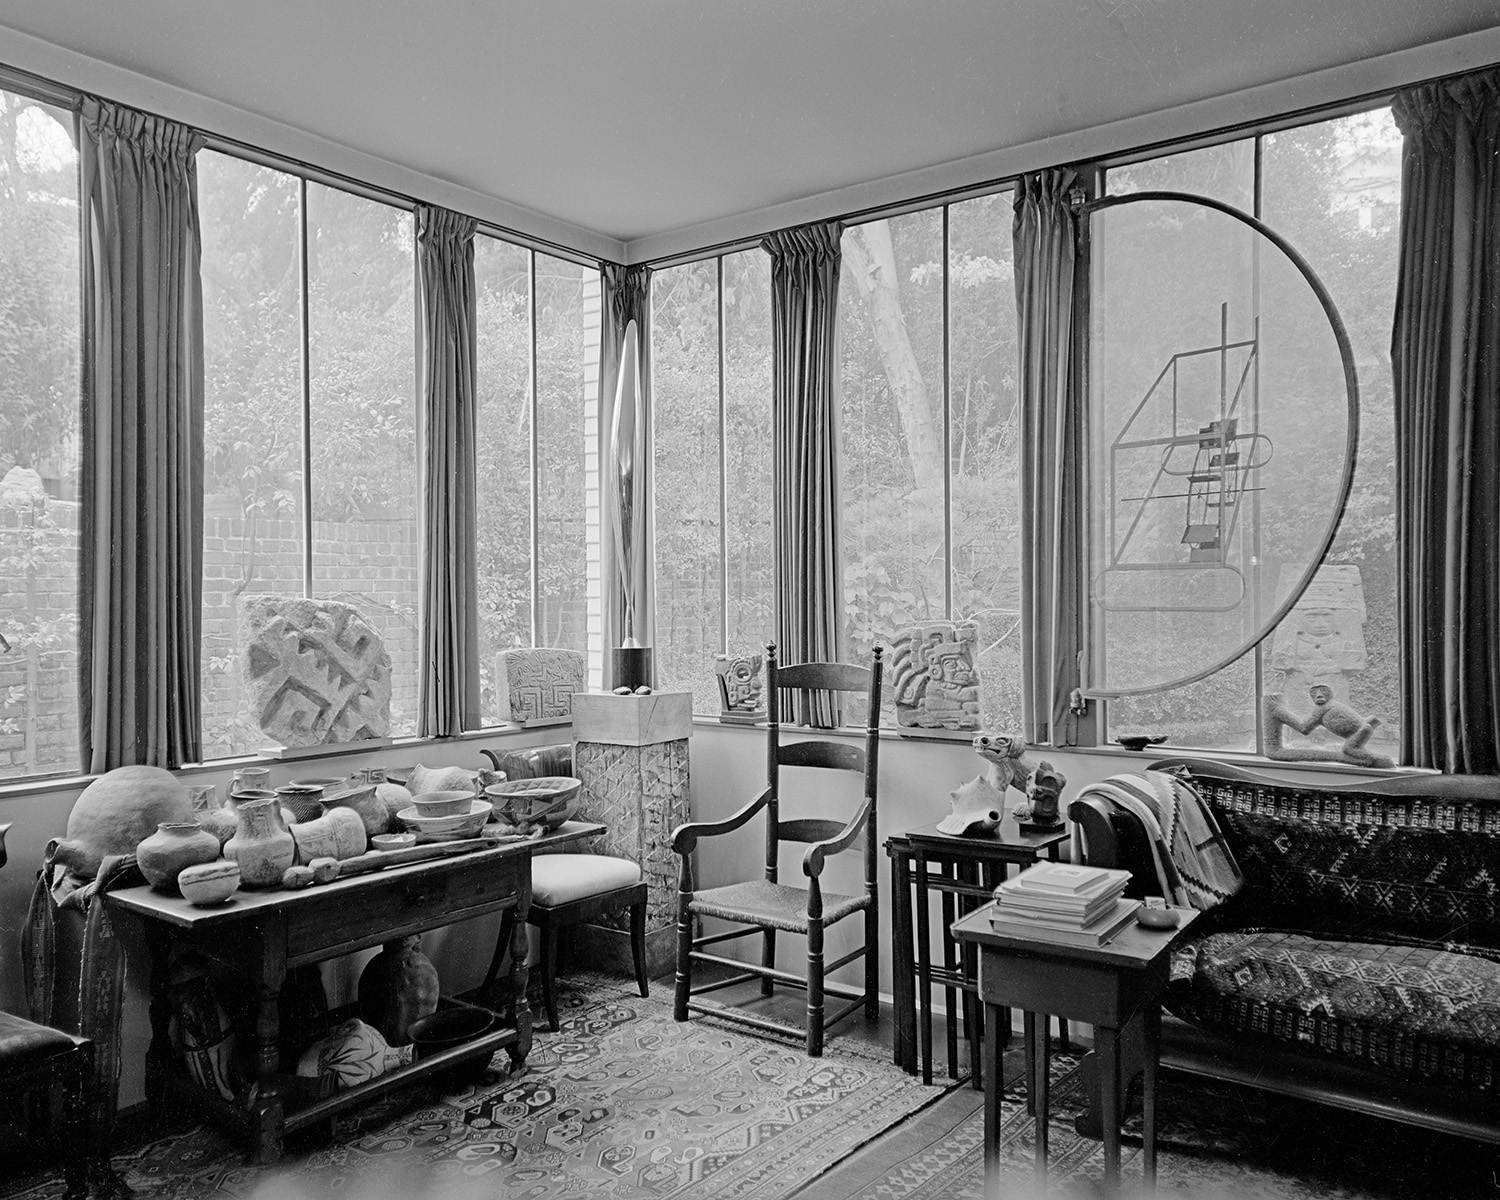 Photograph by Karl Bissinger (1914-2008). View of Louise and Walter Arensberg's sunroom at 7065 Hillside Avenue, Los Angeles, 16 March 195